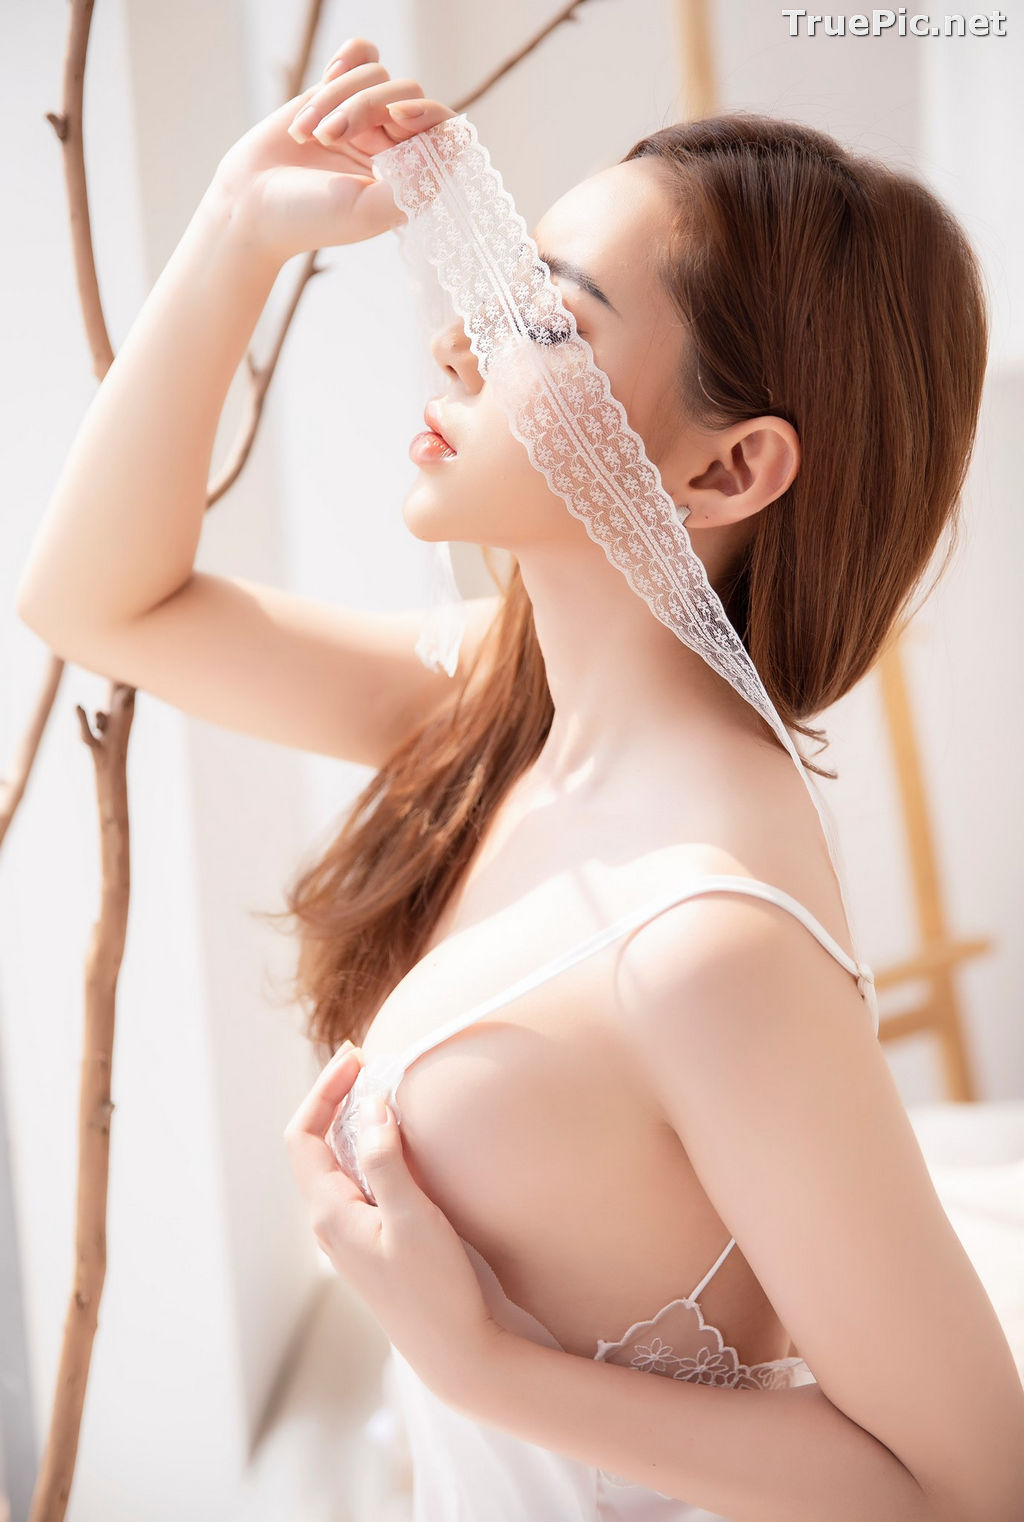 Image Vietnamese Model – Hot Beautiful Girls In White Collection #2 - TruePic.net - Picture-4